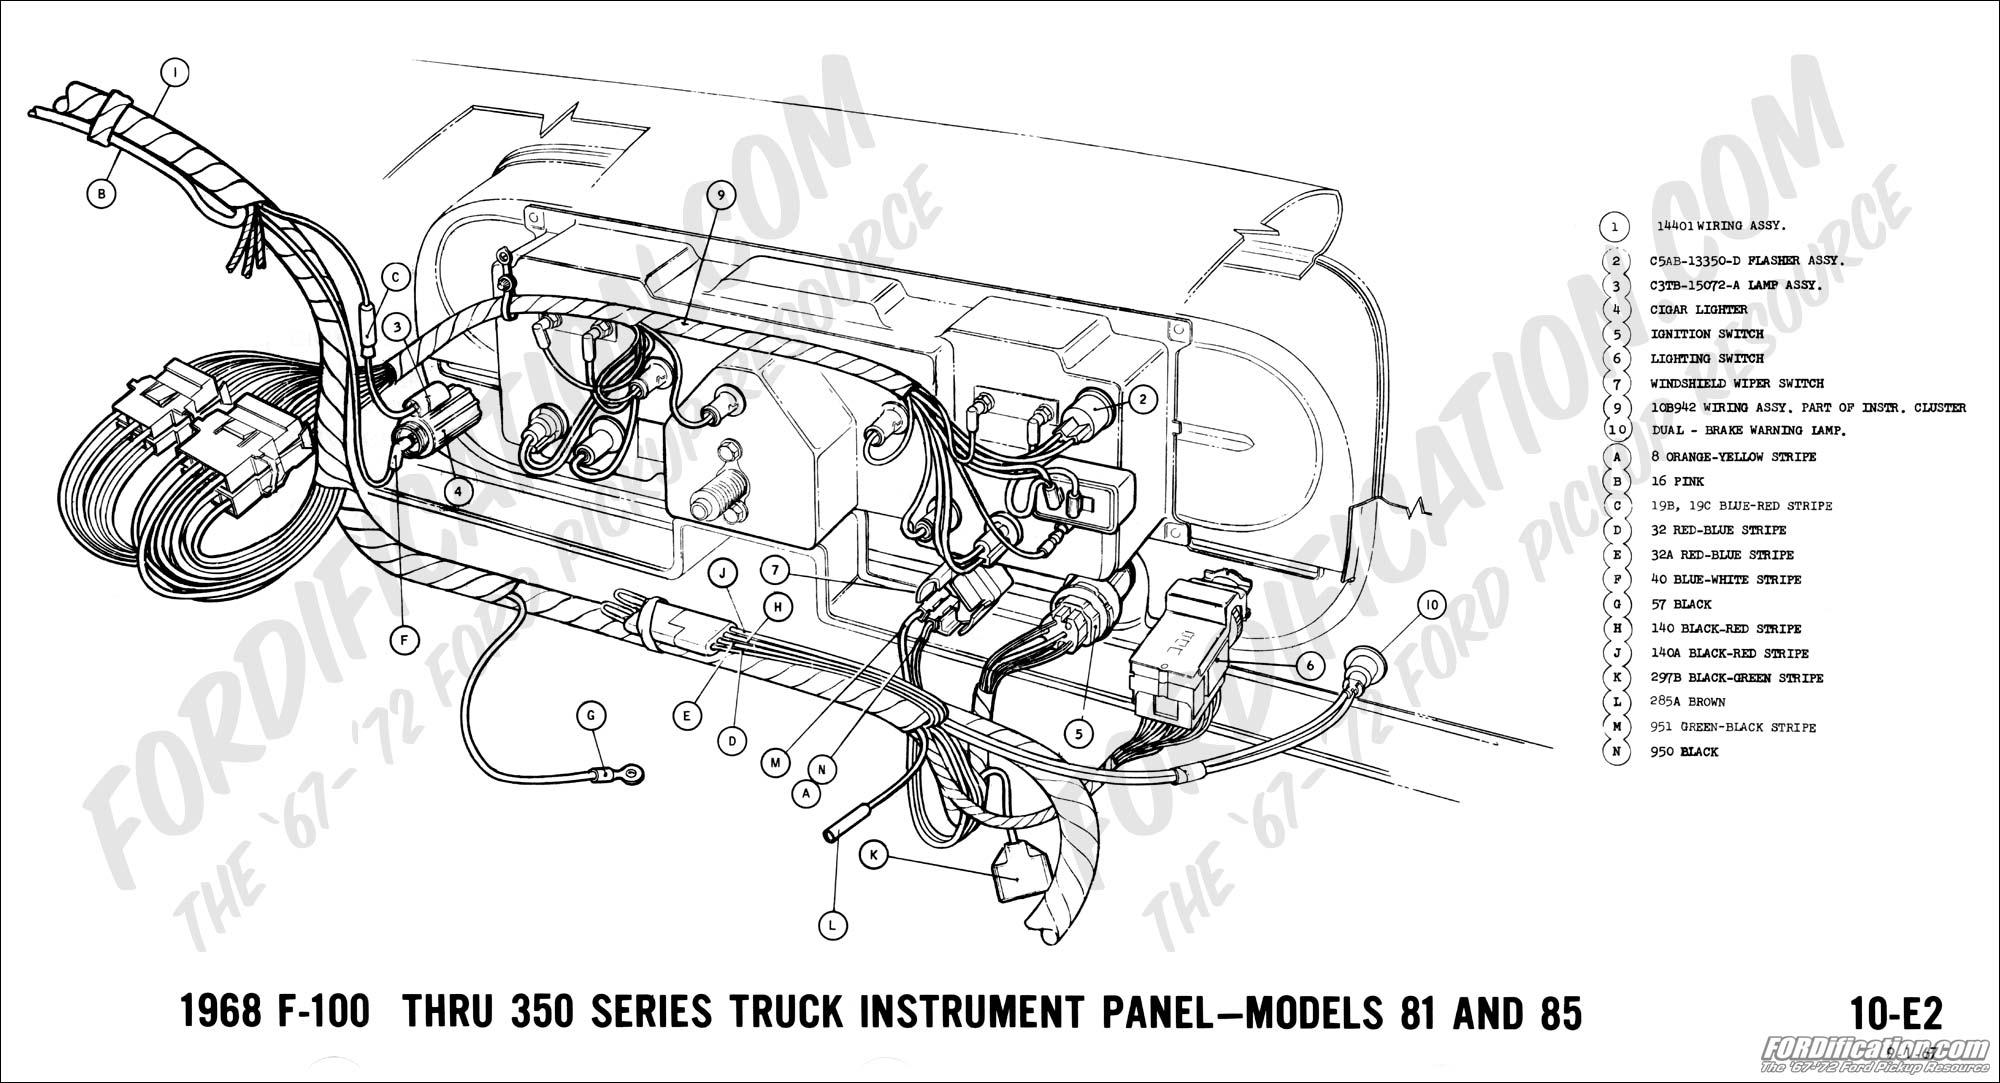 1967 ford f250 wiring diagram ford truck technical drawings and schematics - section h - wiring diagrams 1967 ford mustang wiring diagram